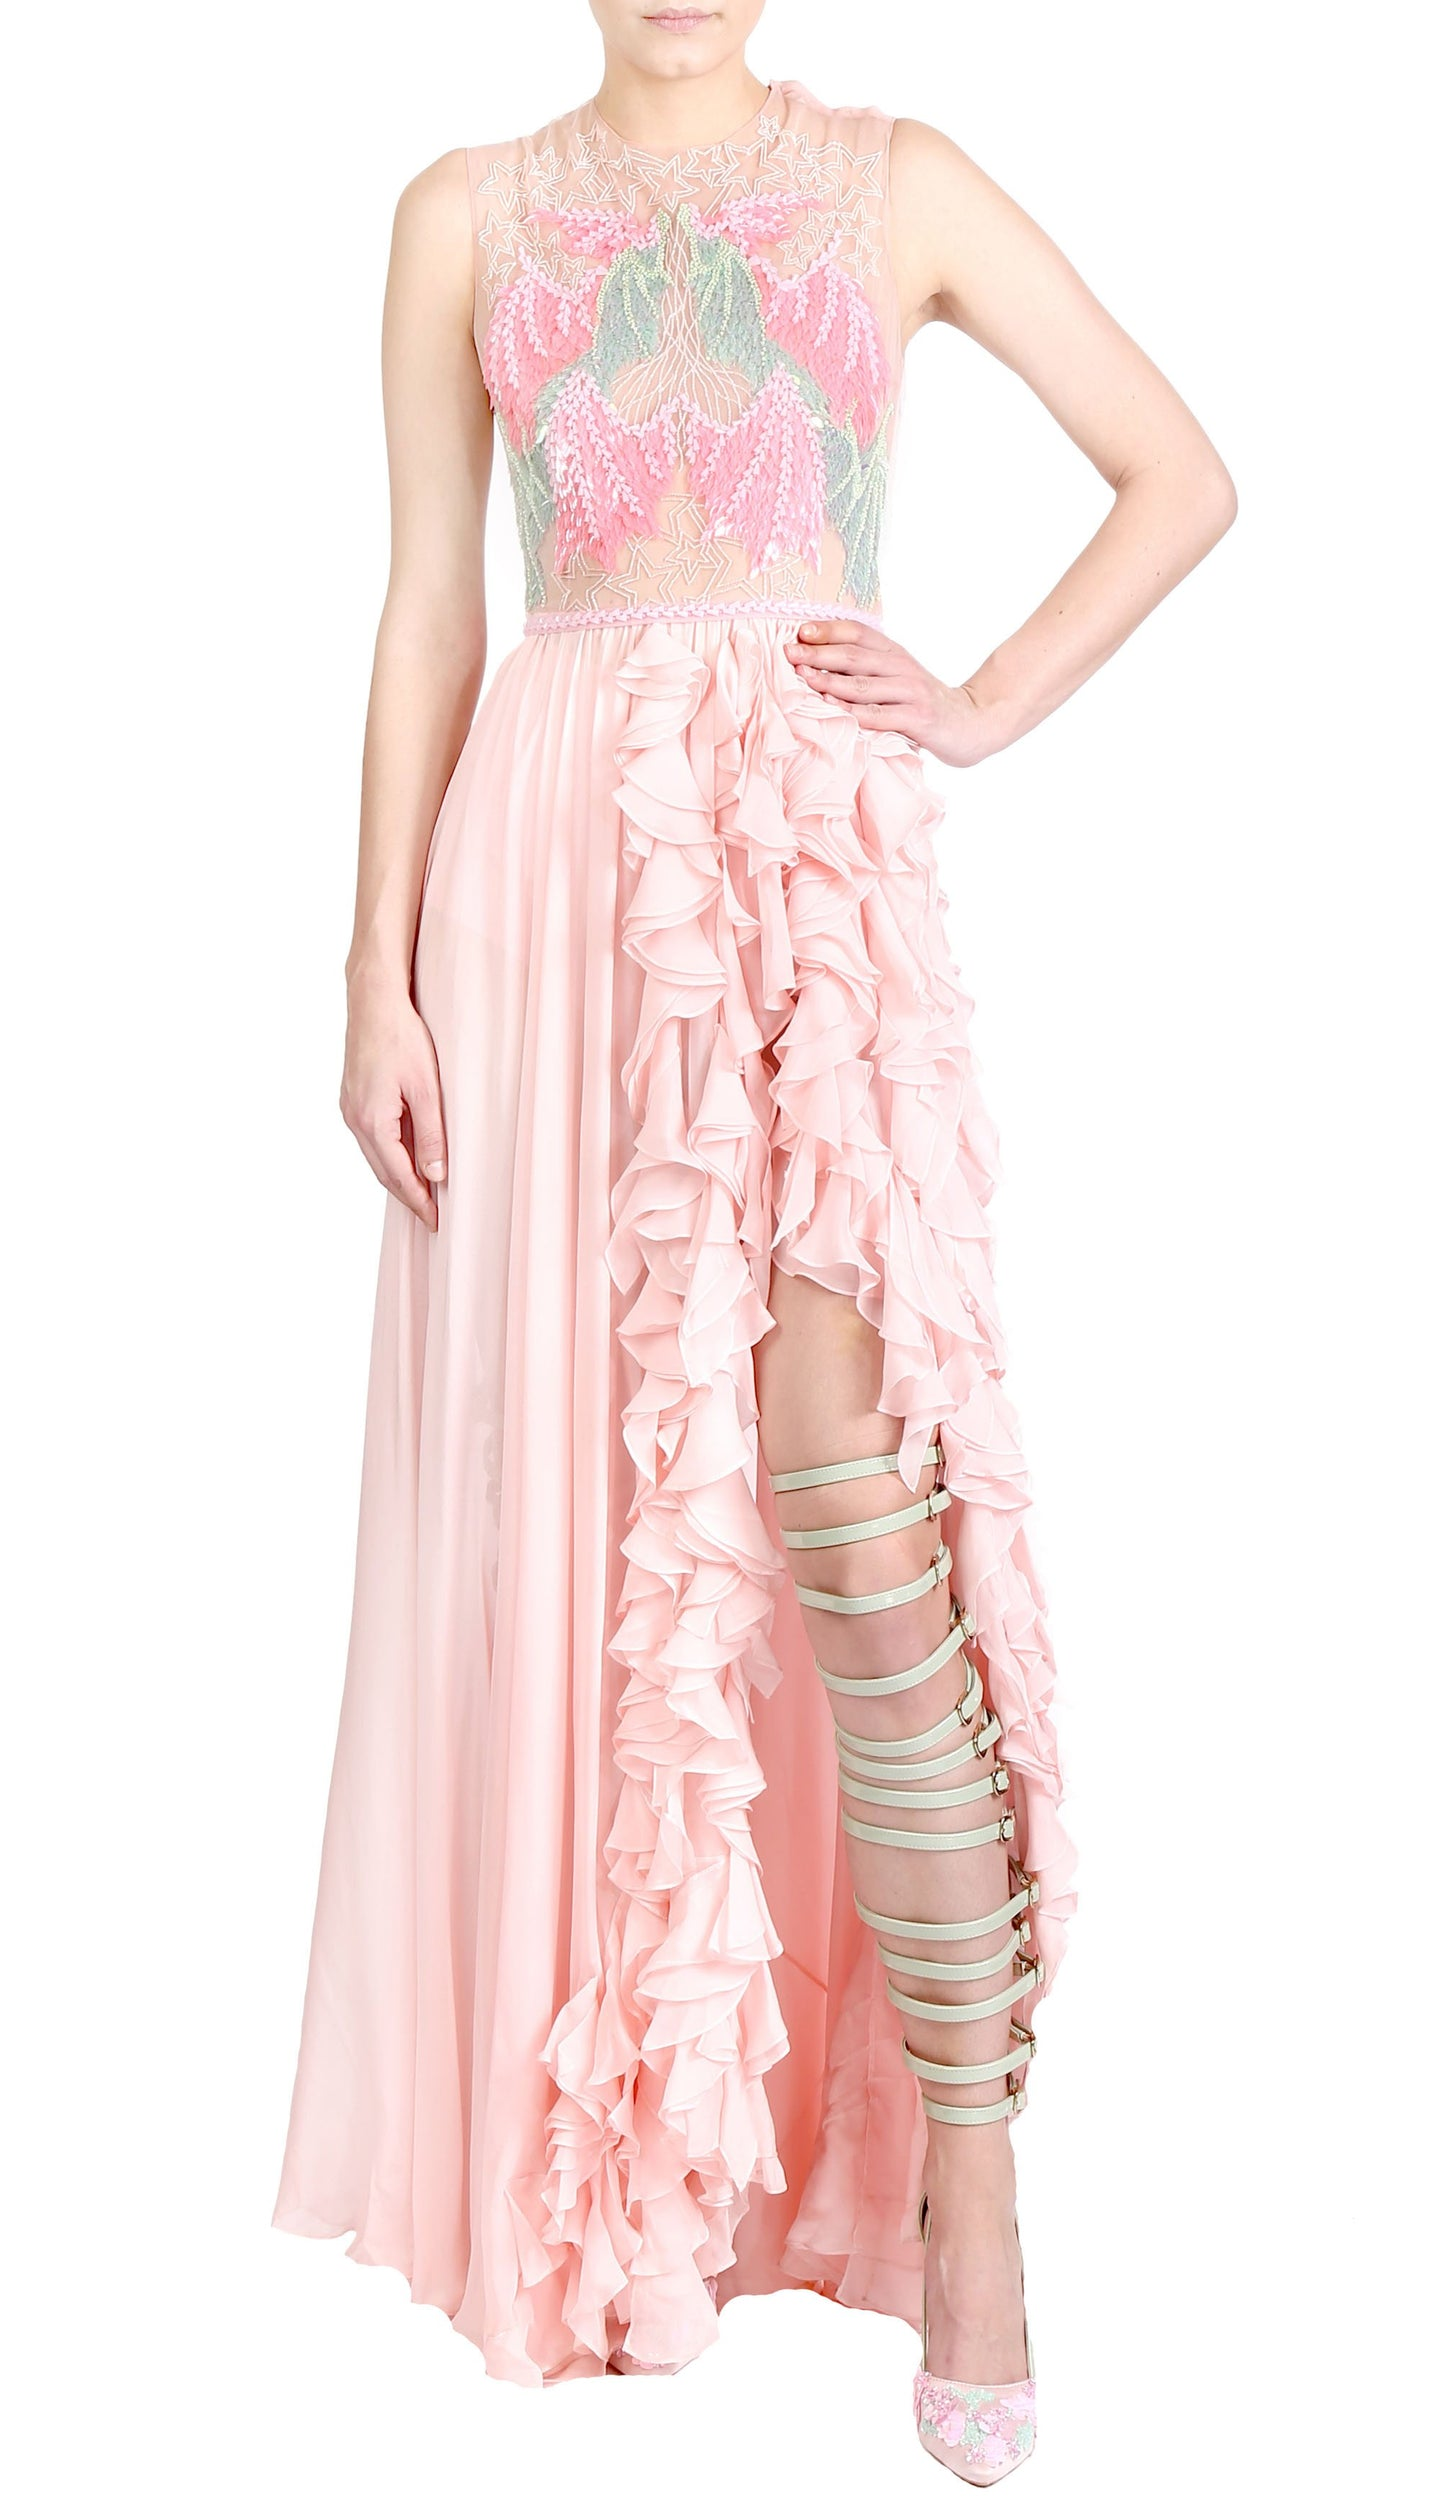 VEILED ROSE DRESS